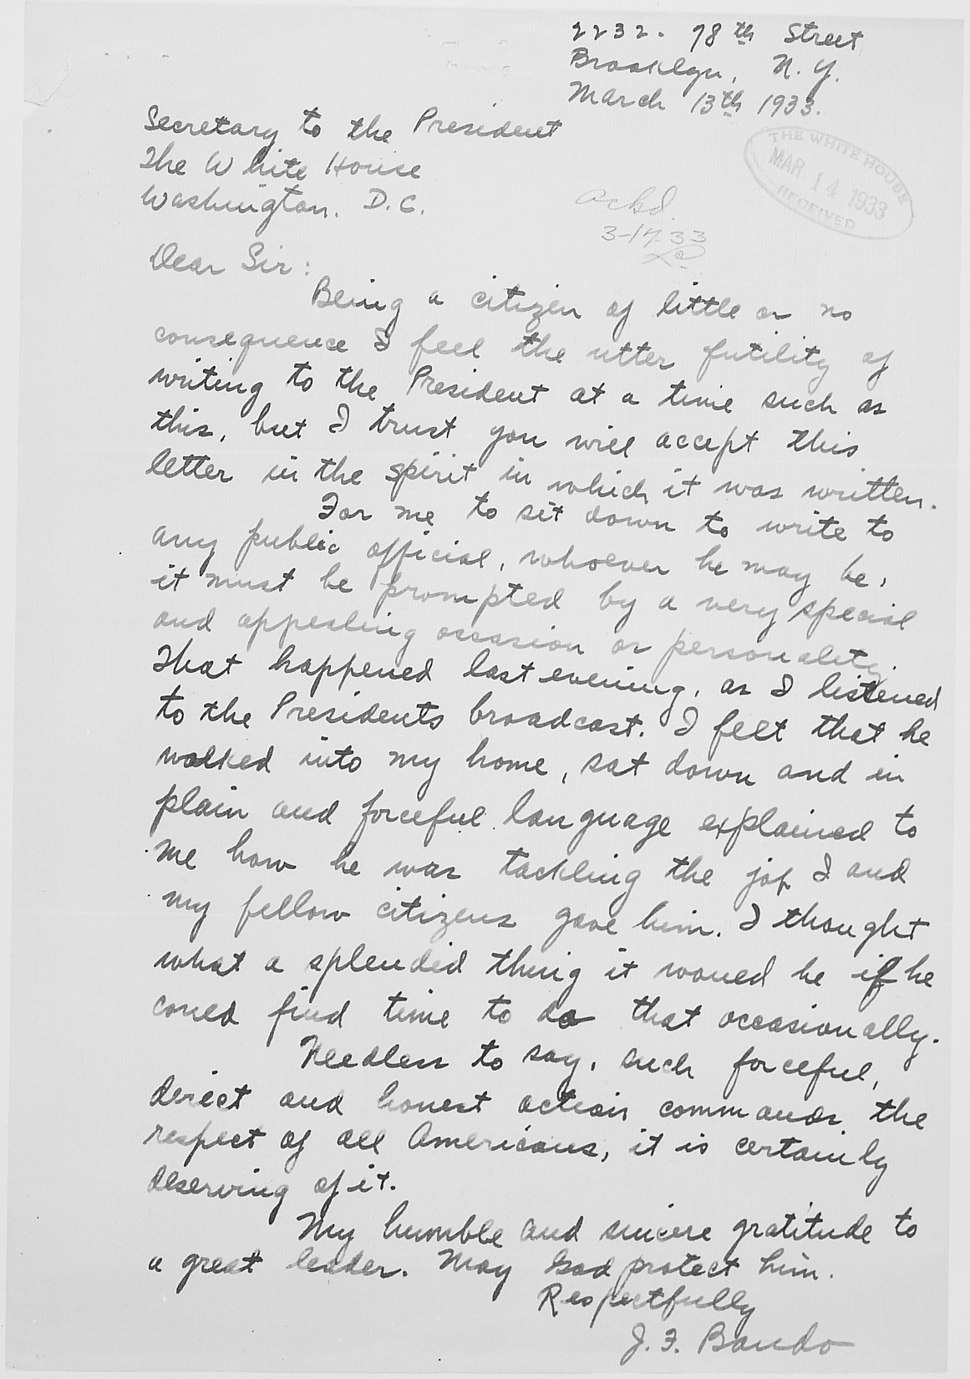 J. F. Bando letter to Franklin D. Roosevelt in reaction to first Fireside Chat. - NARA - 198124